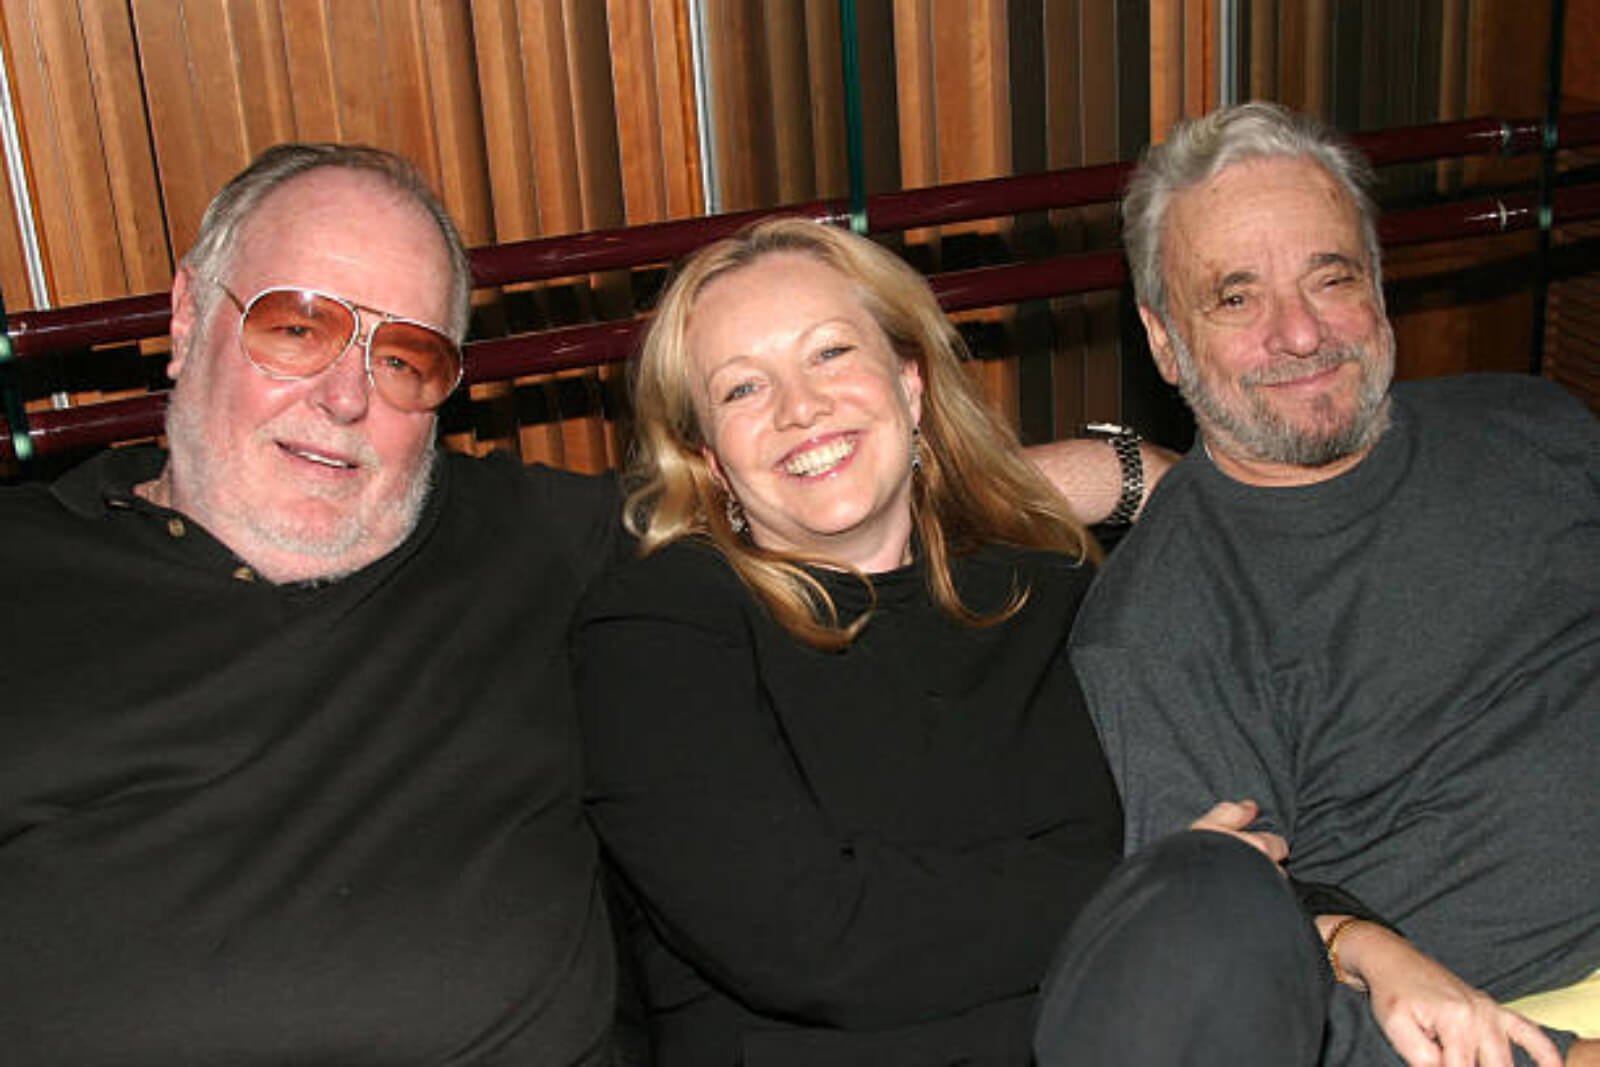 A photo of Paul Gemignani, Susan Stroman, and Stephen Sondheim, the award-winning music director, director, and composer.